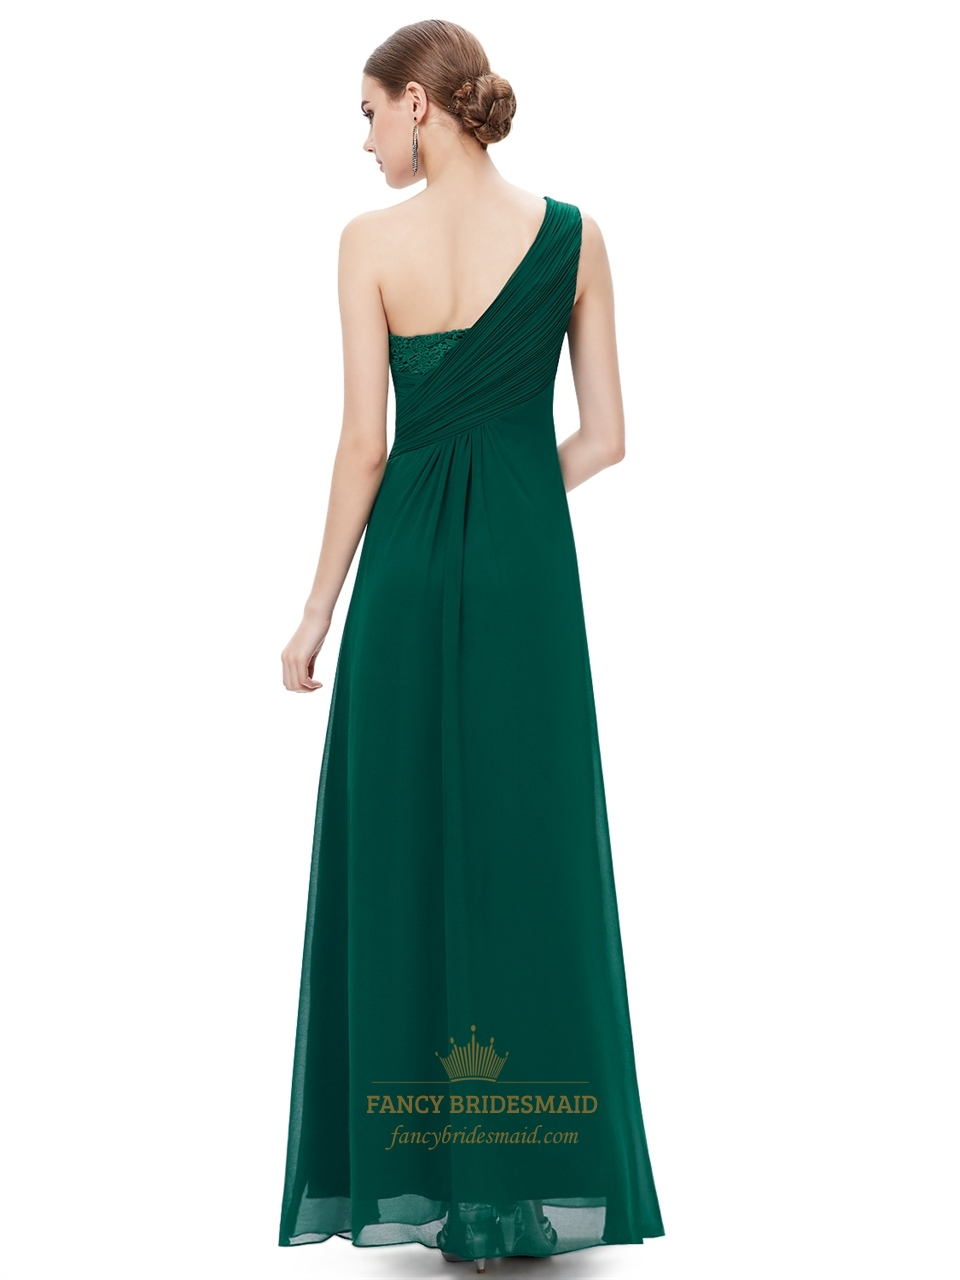 Emerald Green One Shoulder Dress And Simple Guide To Choosing